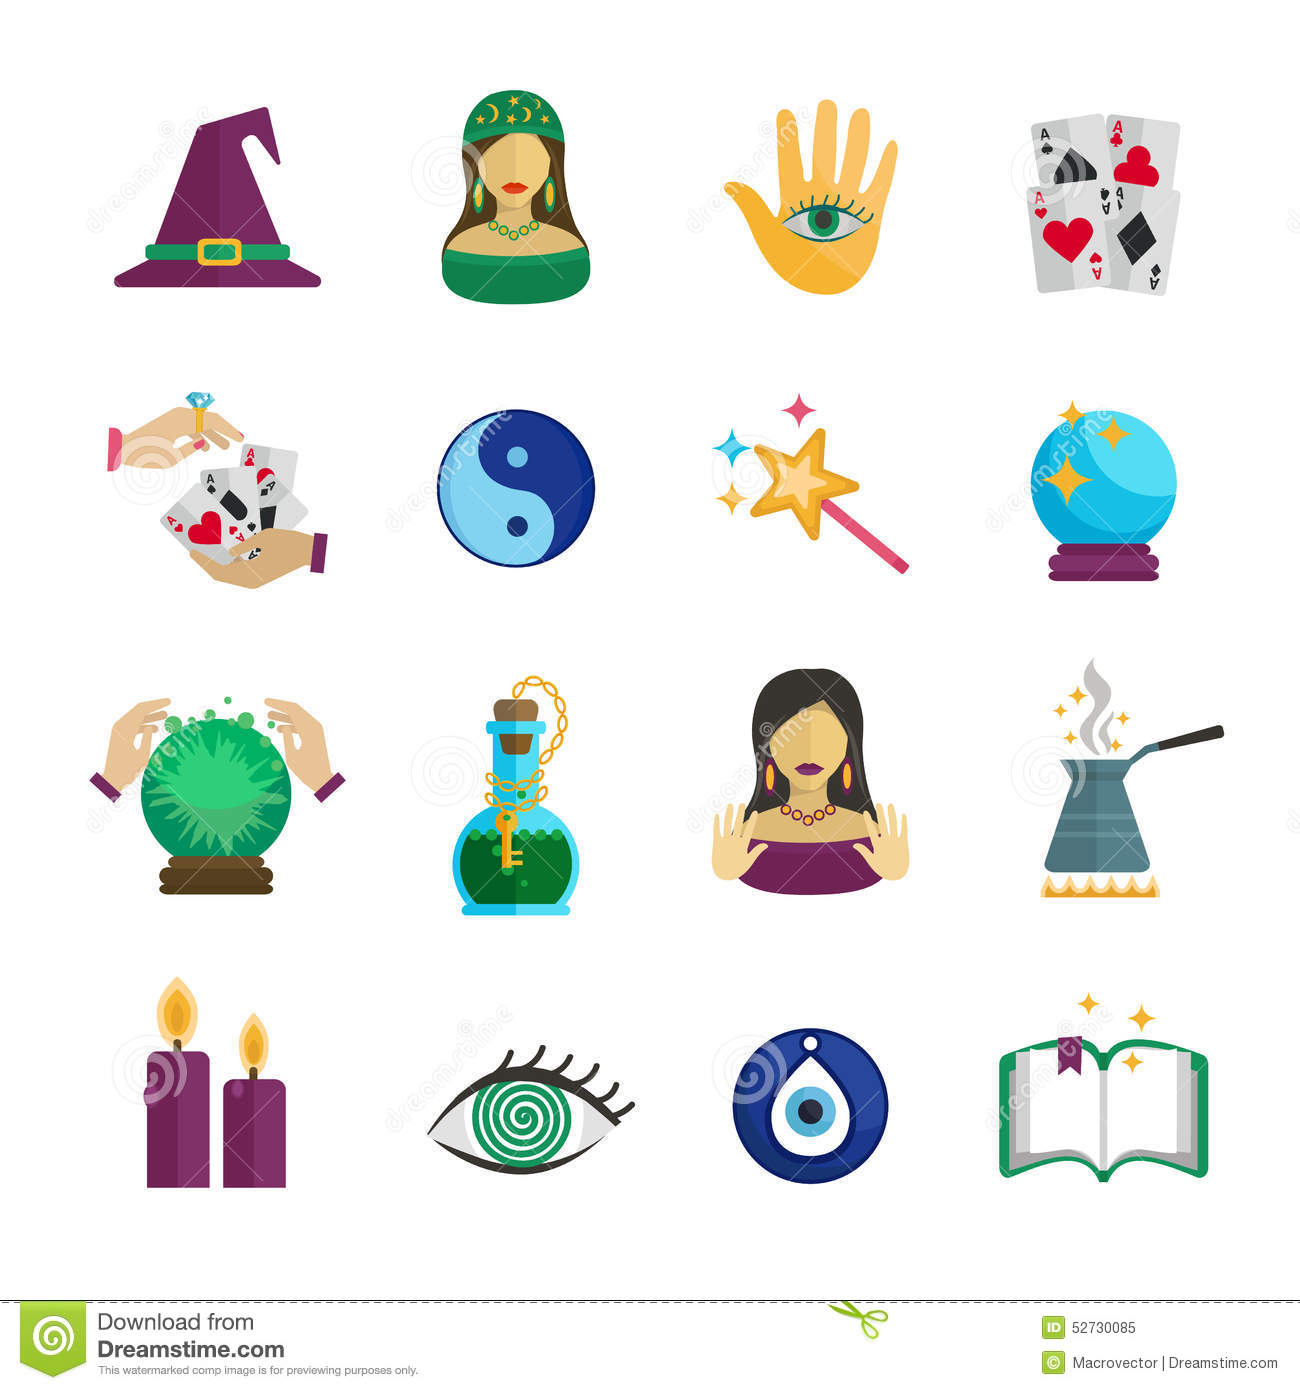 Gypsy Stock Images, Royalty-Free Images & Vectors ... |Gypsy Fortune Teller Symbols